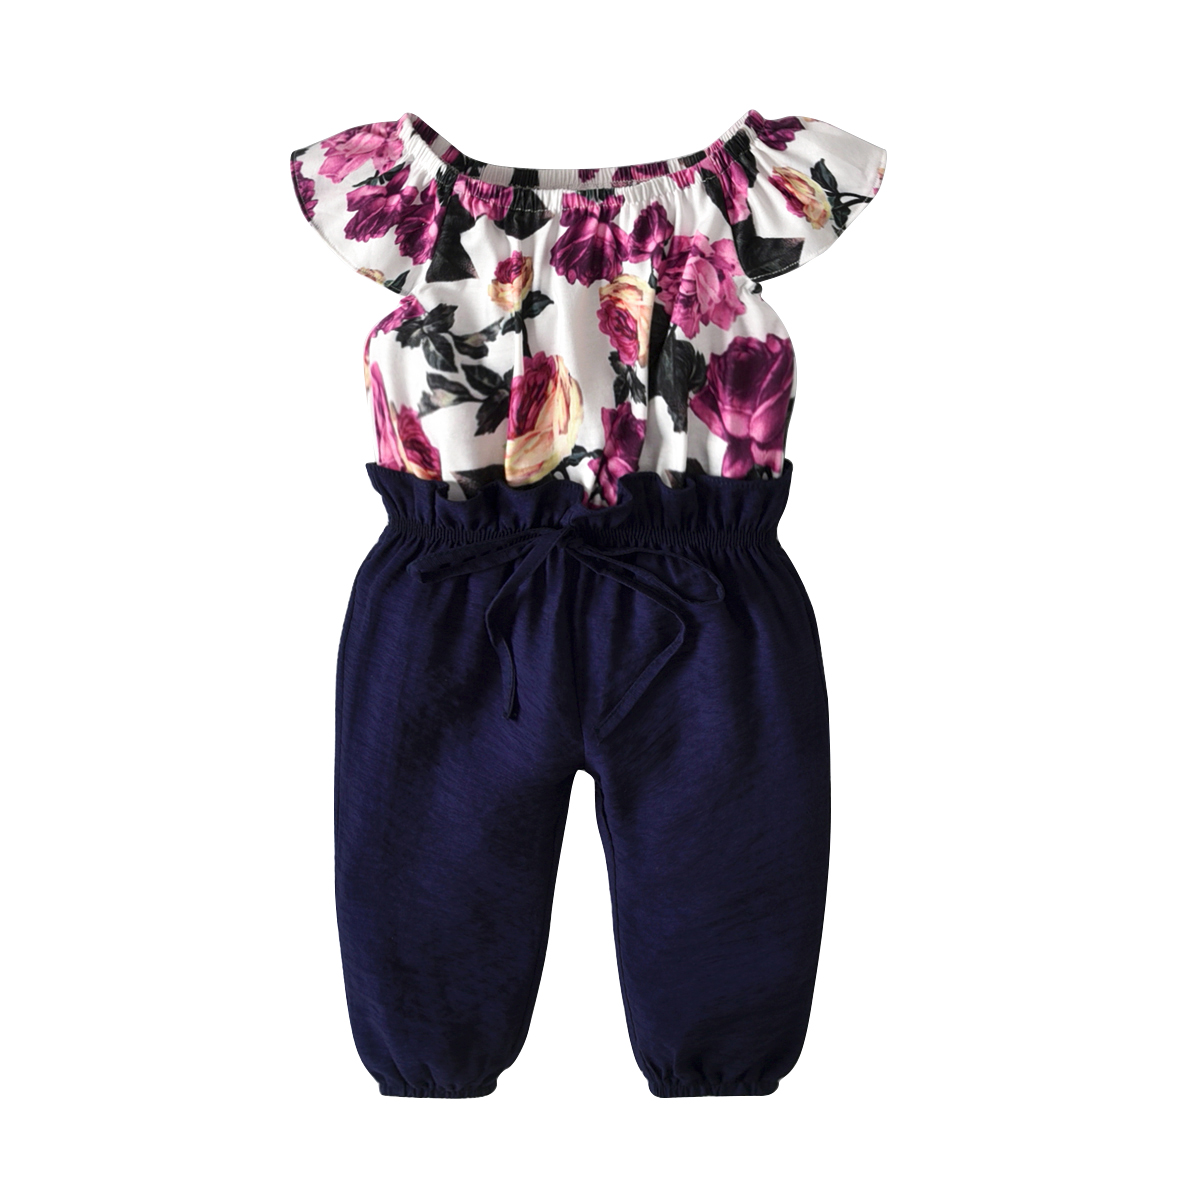 Toddler Girls Kids Floral Overall   Romper   Jumpsuit Long Pants Summer One-Piece Outfit Clothes 1-7Y